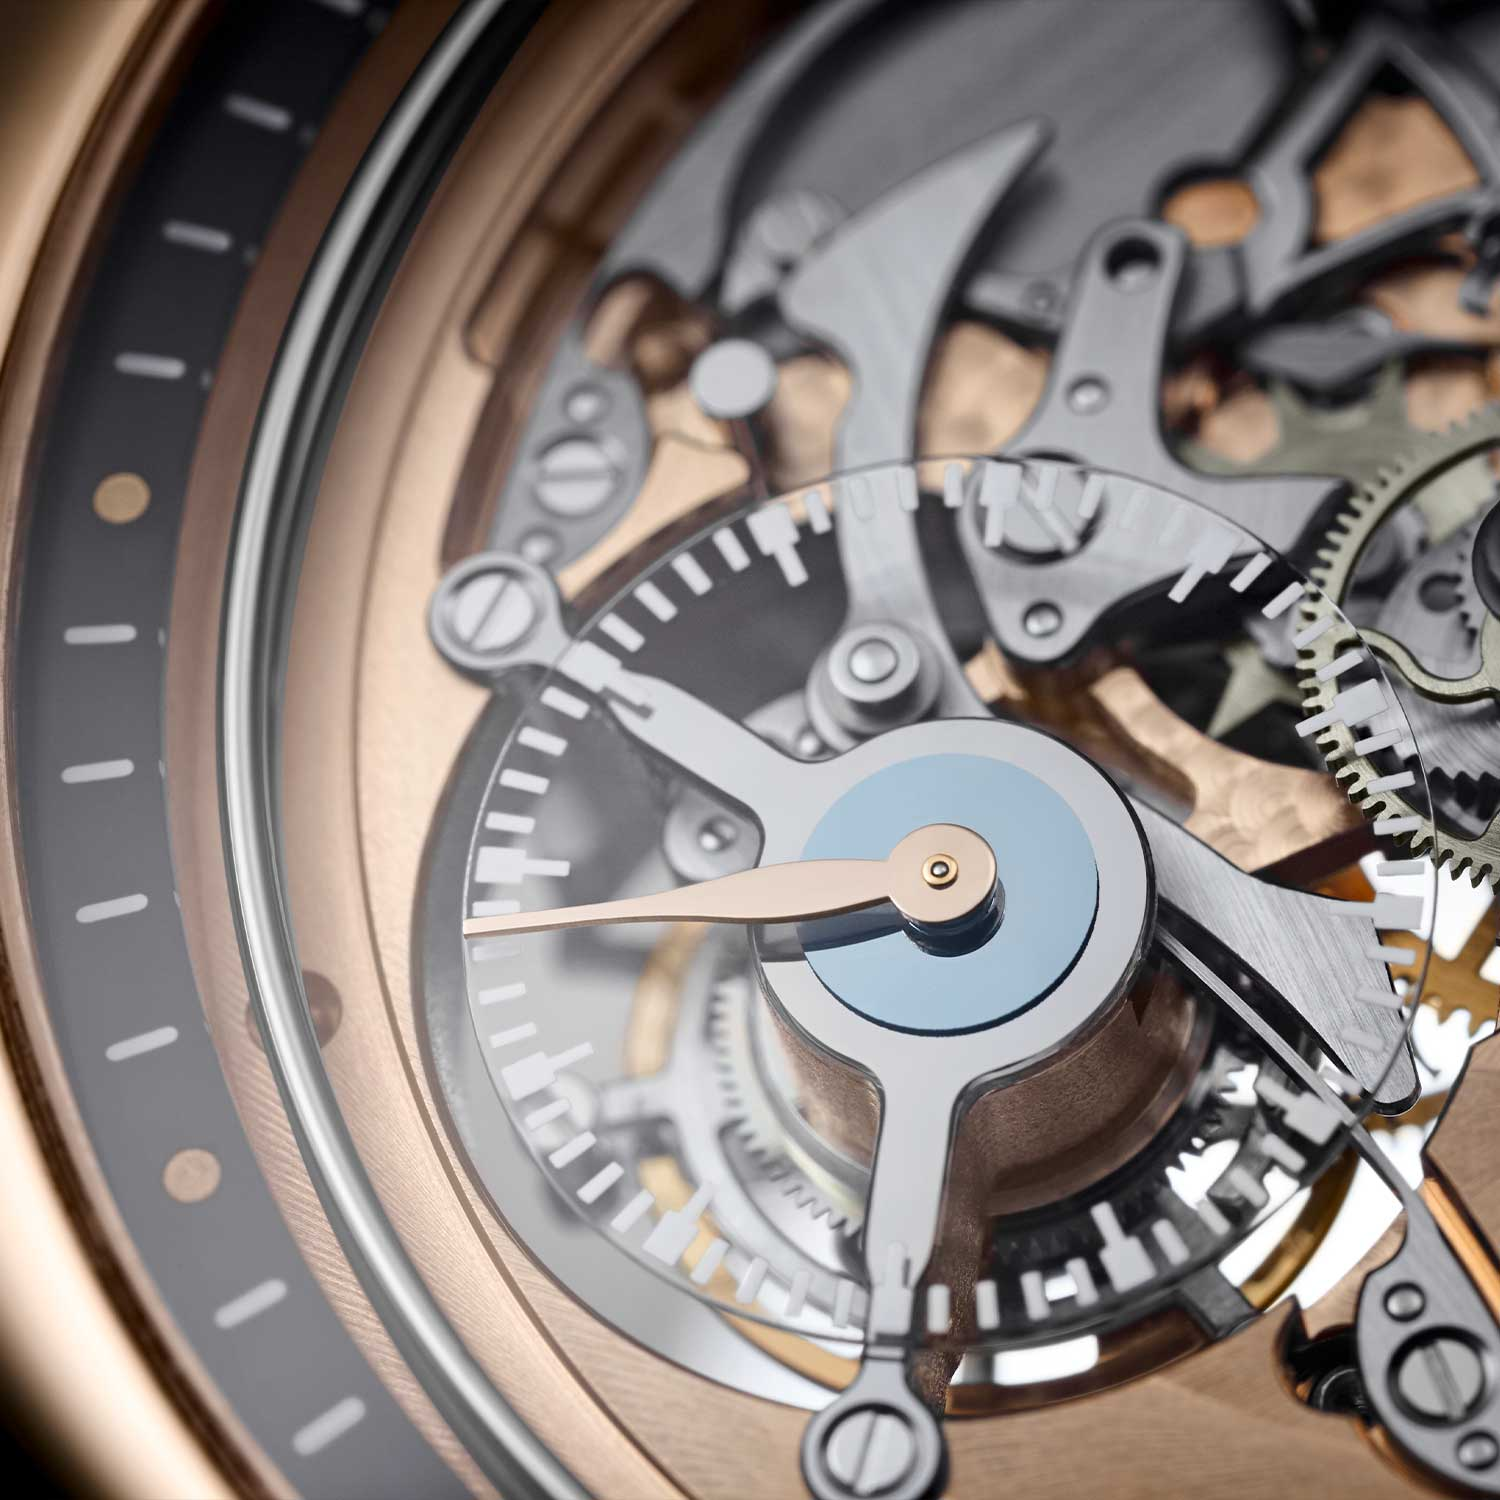 The tourbillon aperture visible from the front of the watch showing the underside of the tourbillon carriage